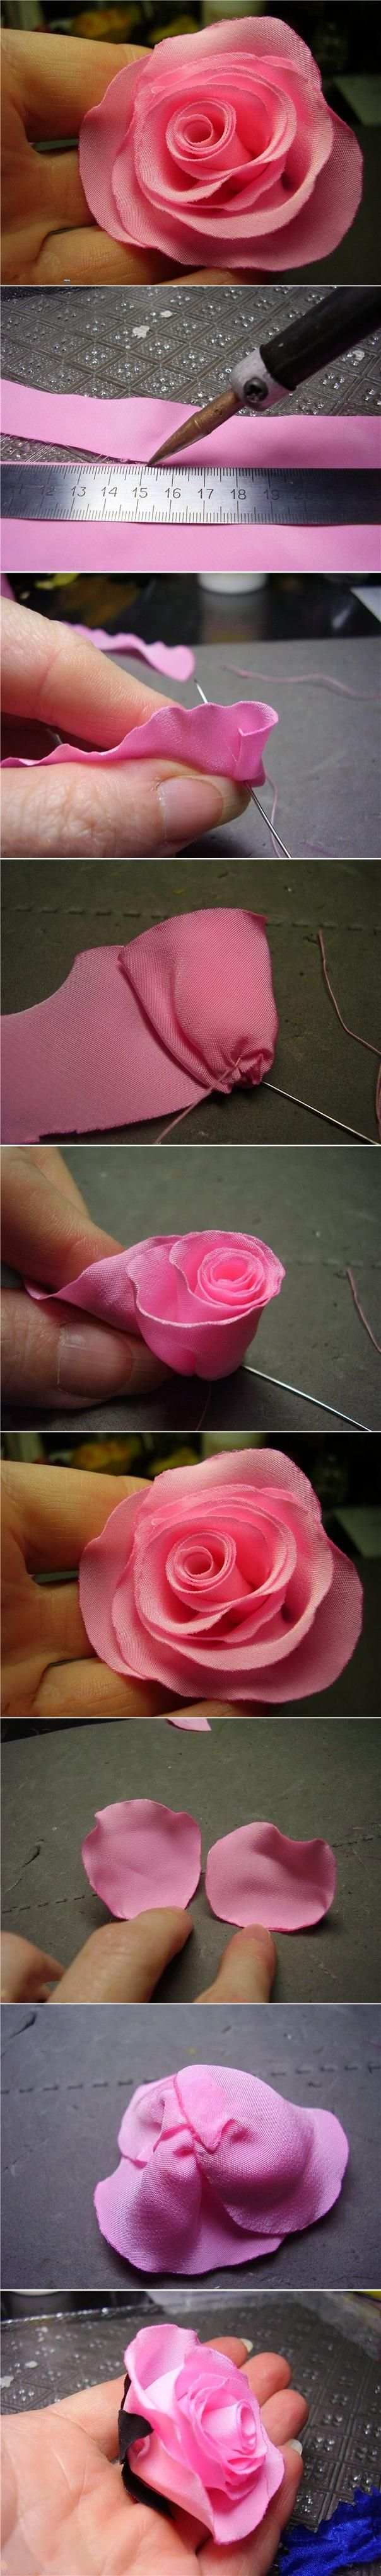 DIY-Pretty-Fabric-Rose